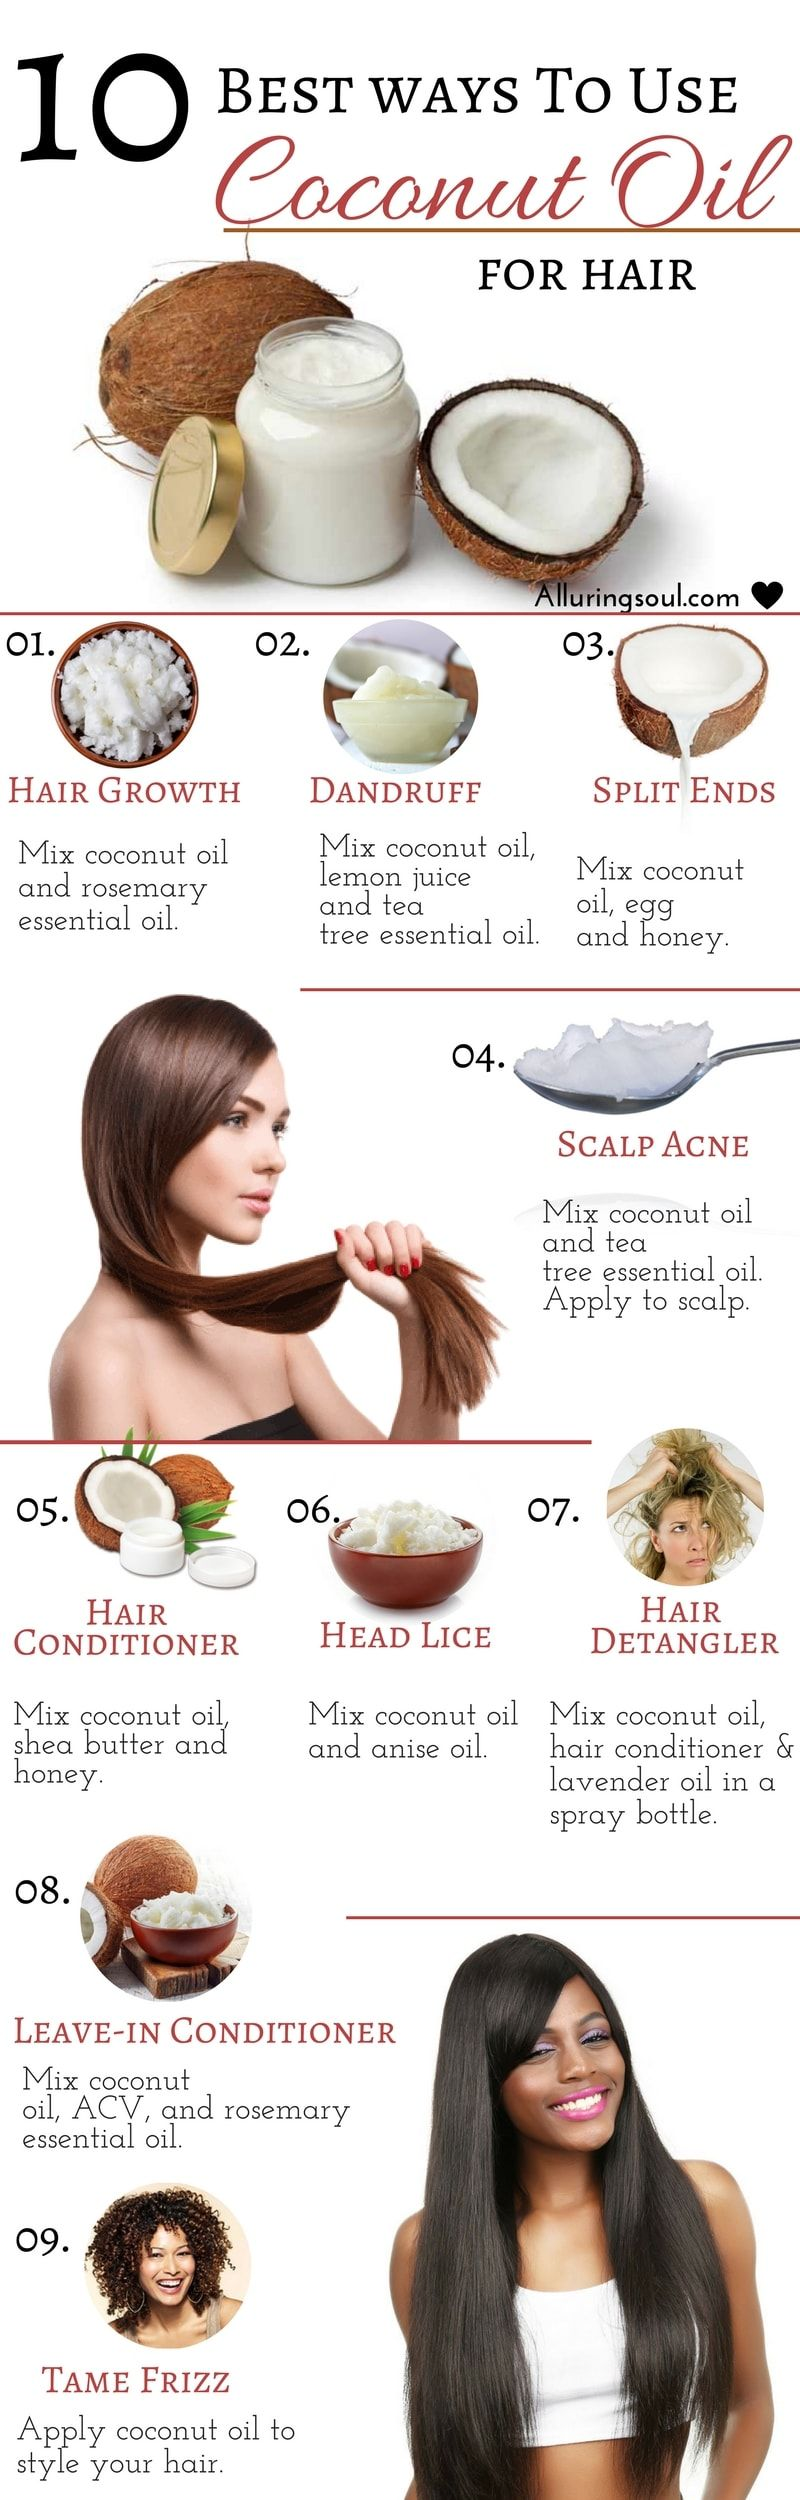 how to make coconut oil for hair growth